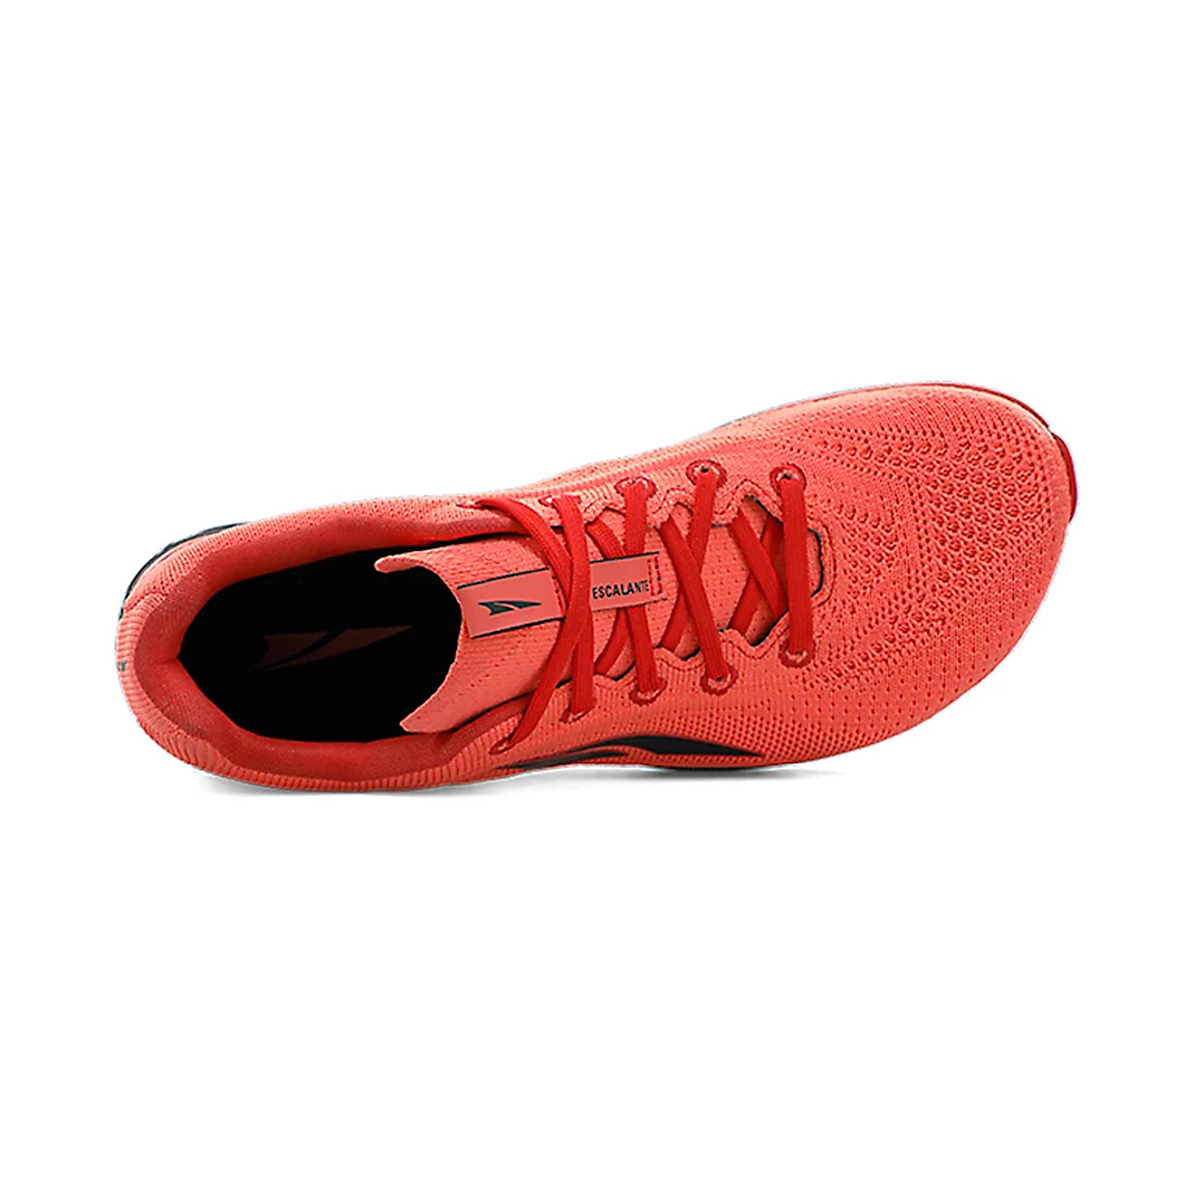 Women's Altra Escalante 2.5 Running Shoe - Color: Coral - Size: 5.5 - Width: Regular, Coral, large, image 3